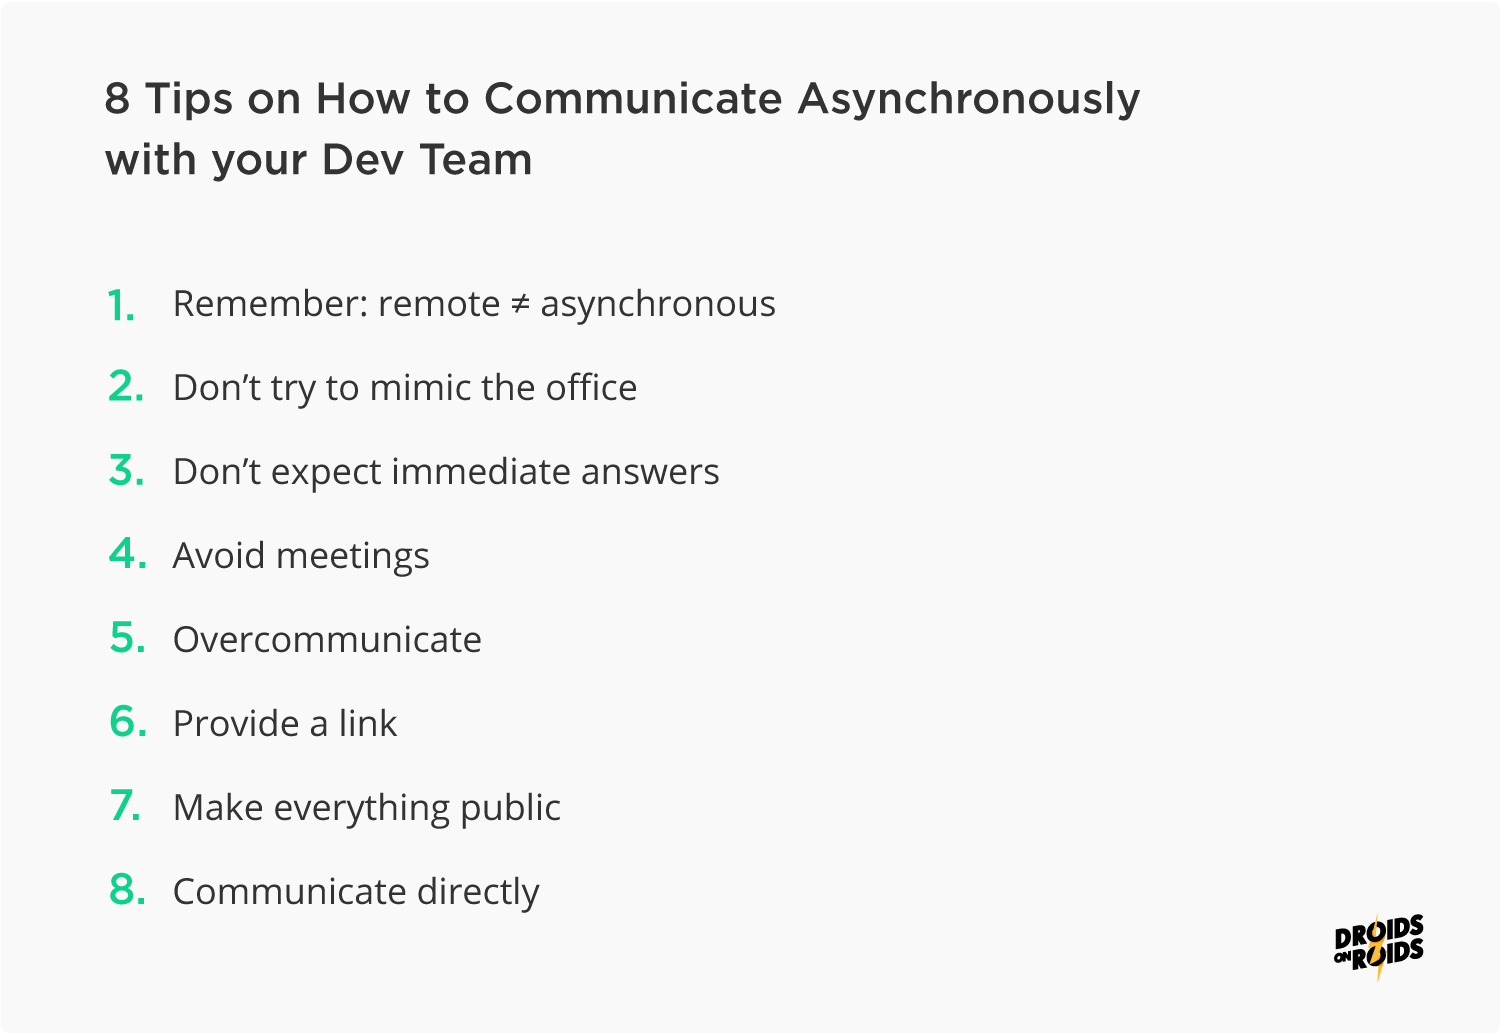 How to Communicate Asynchronously with your Development Team